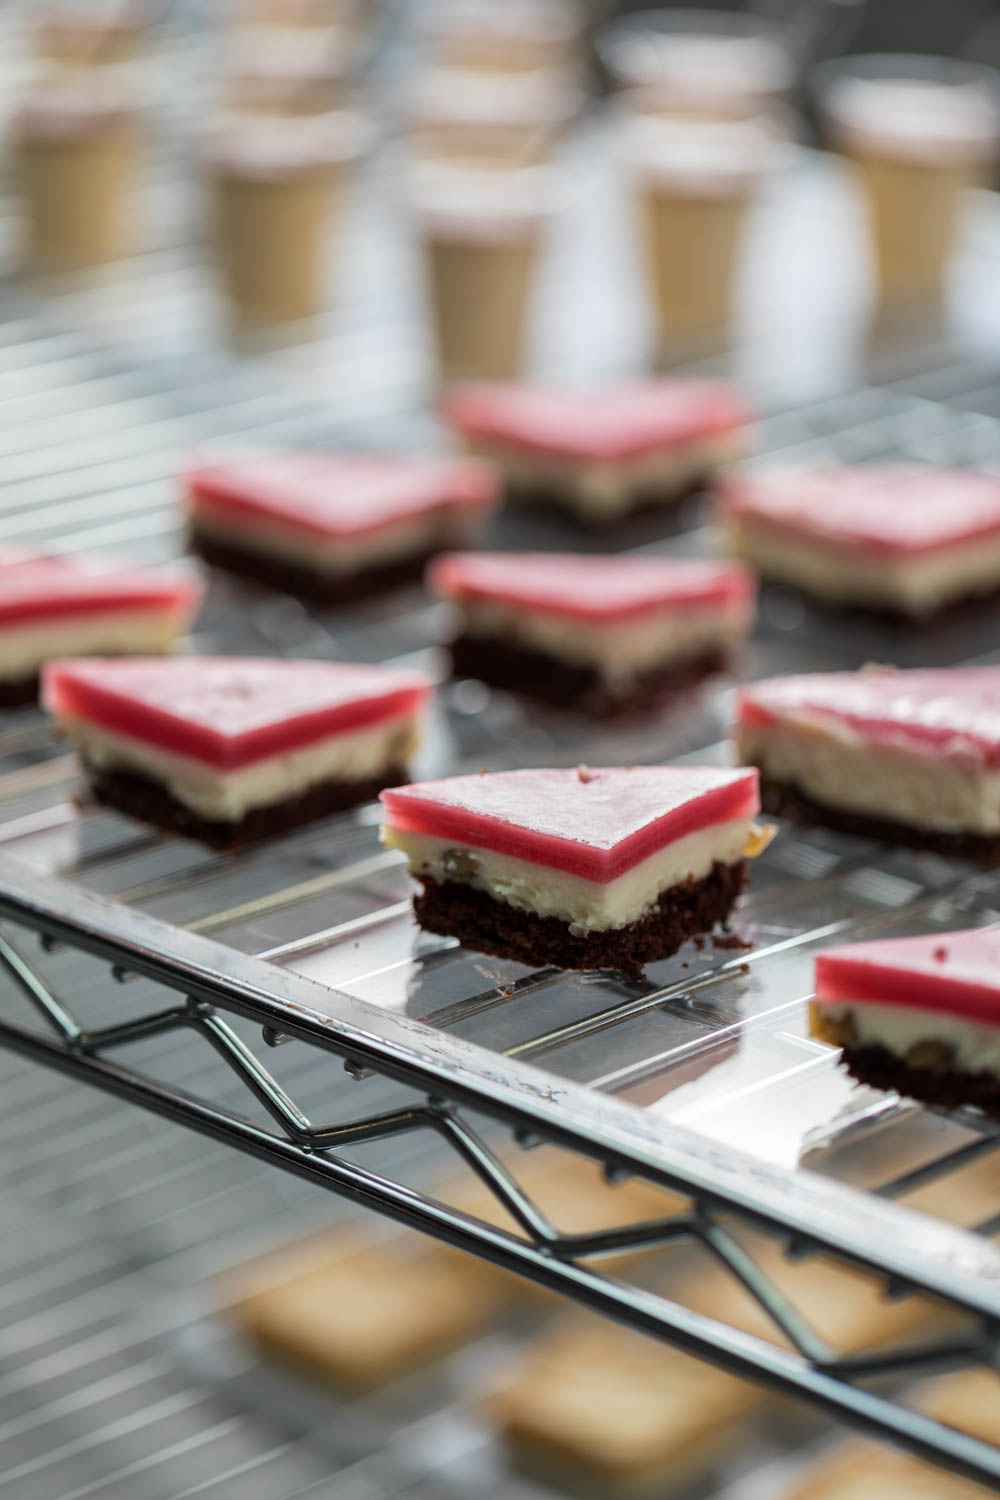 Delicious desserts with cranberry, chocolate, and other flavors